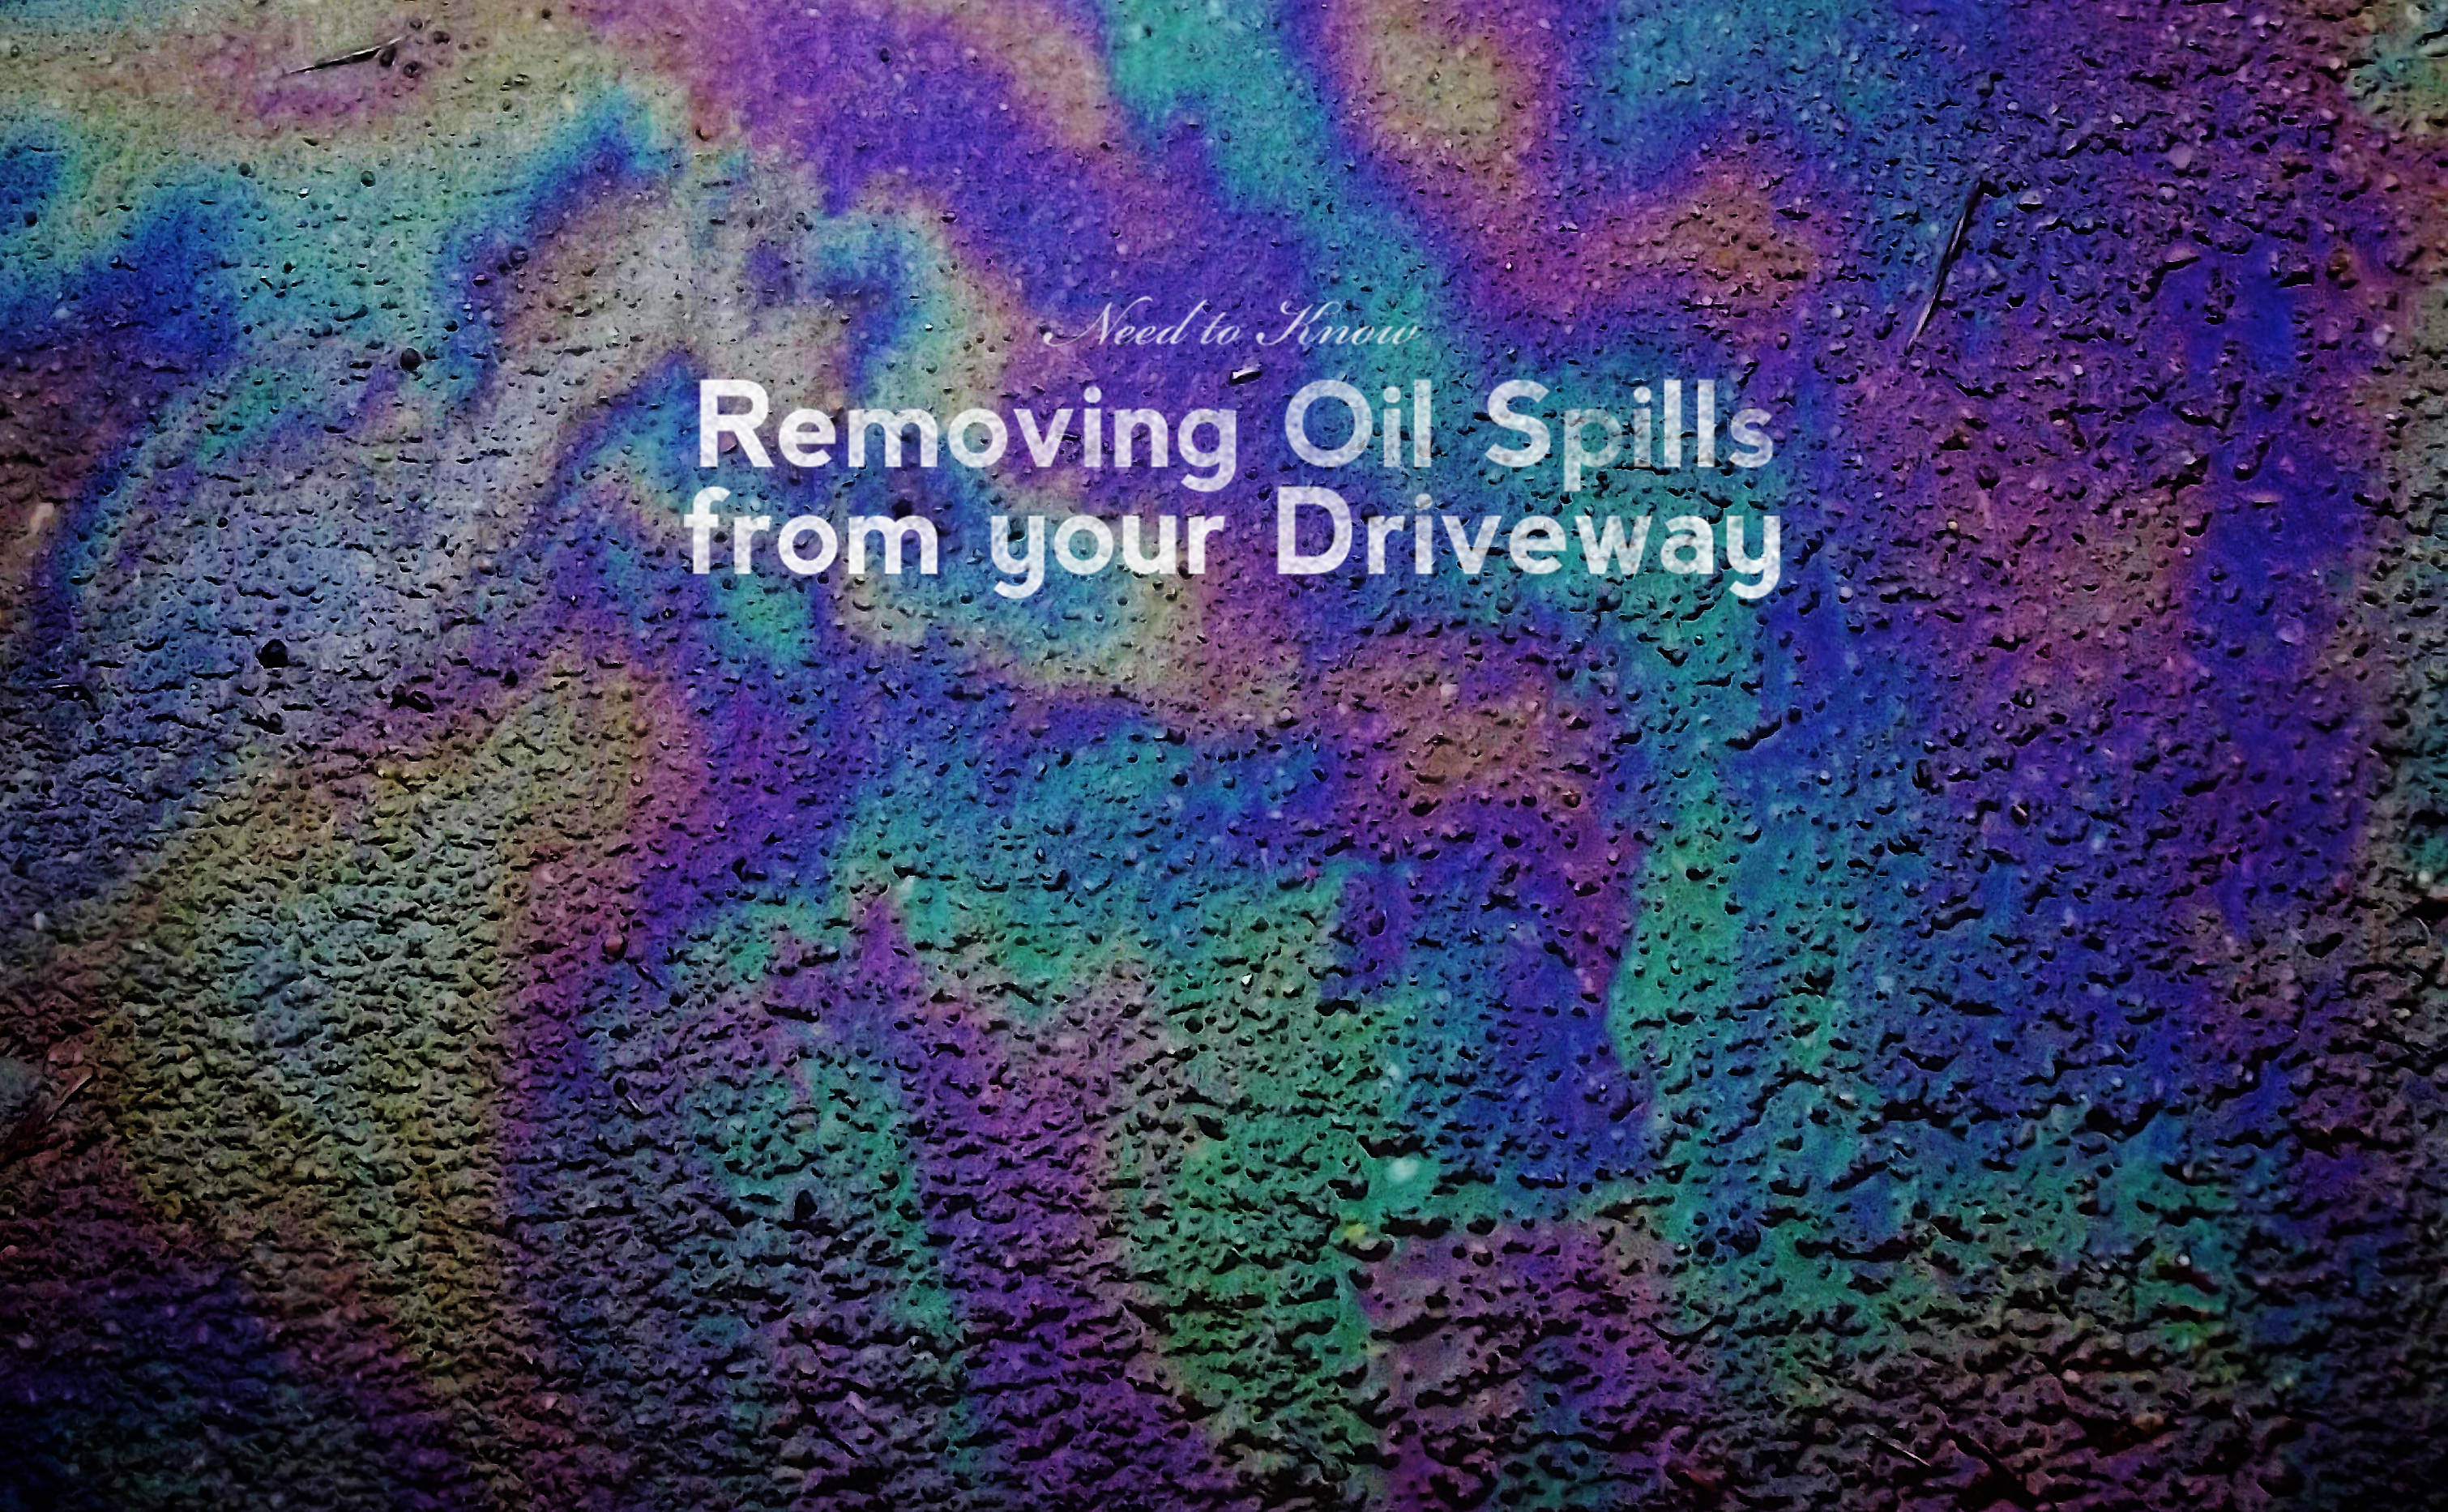 Removing Oil Spills from your Driveway